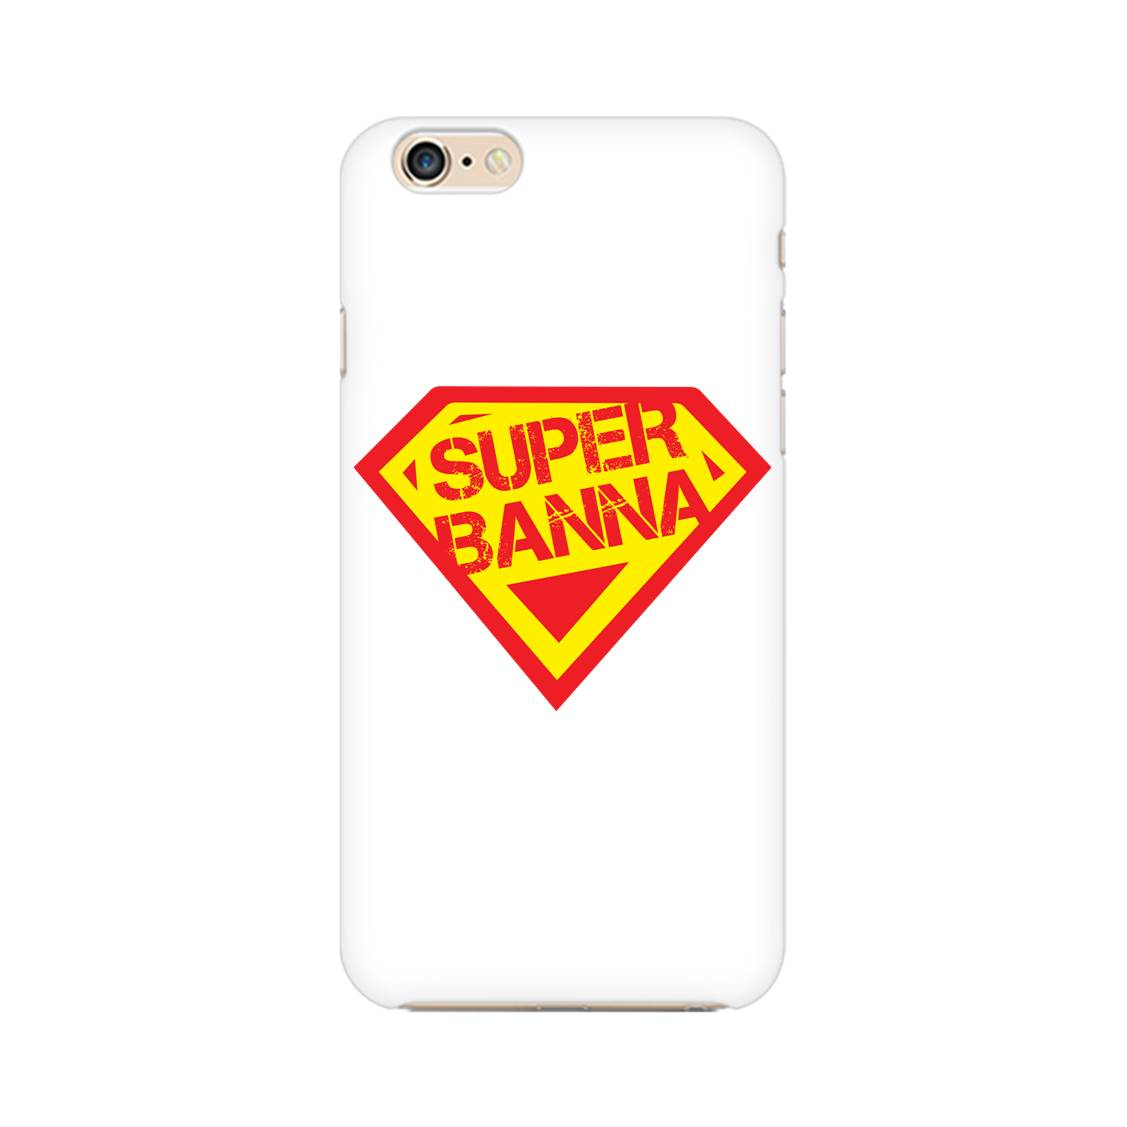 Super Banna Phone Cover